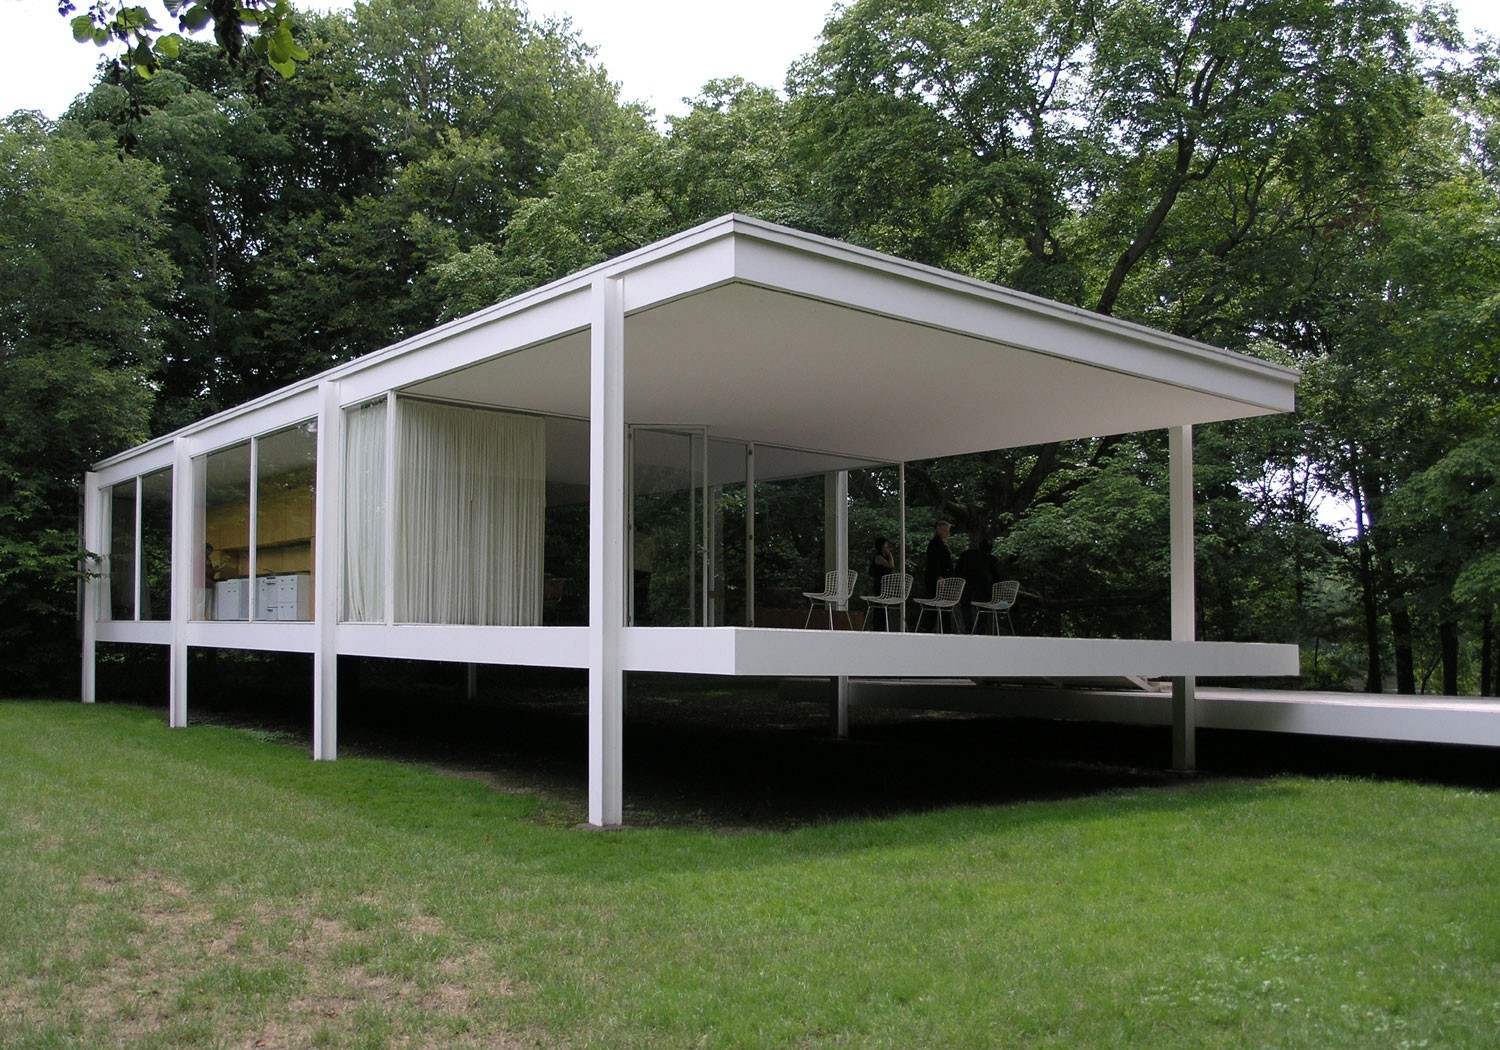 Patio Home Plans Farnsworth House 183 Buildings Of Chicago 183 Chicago